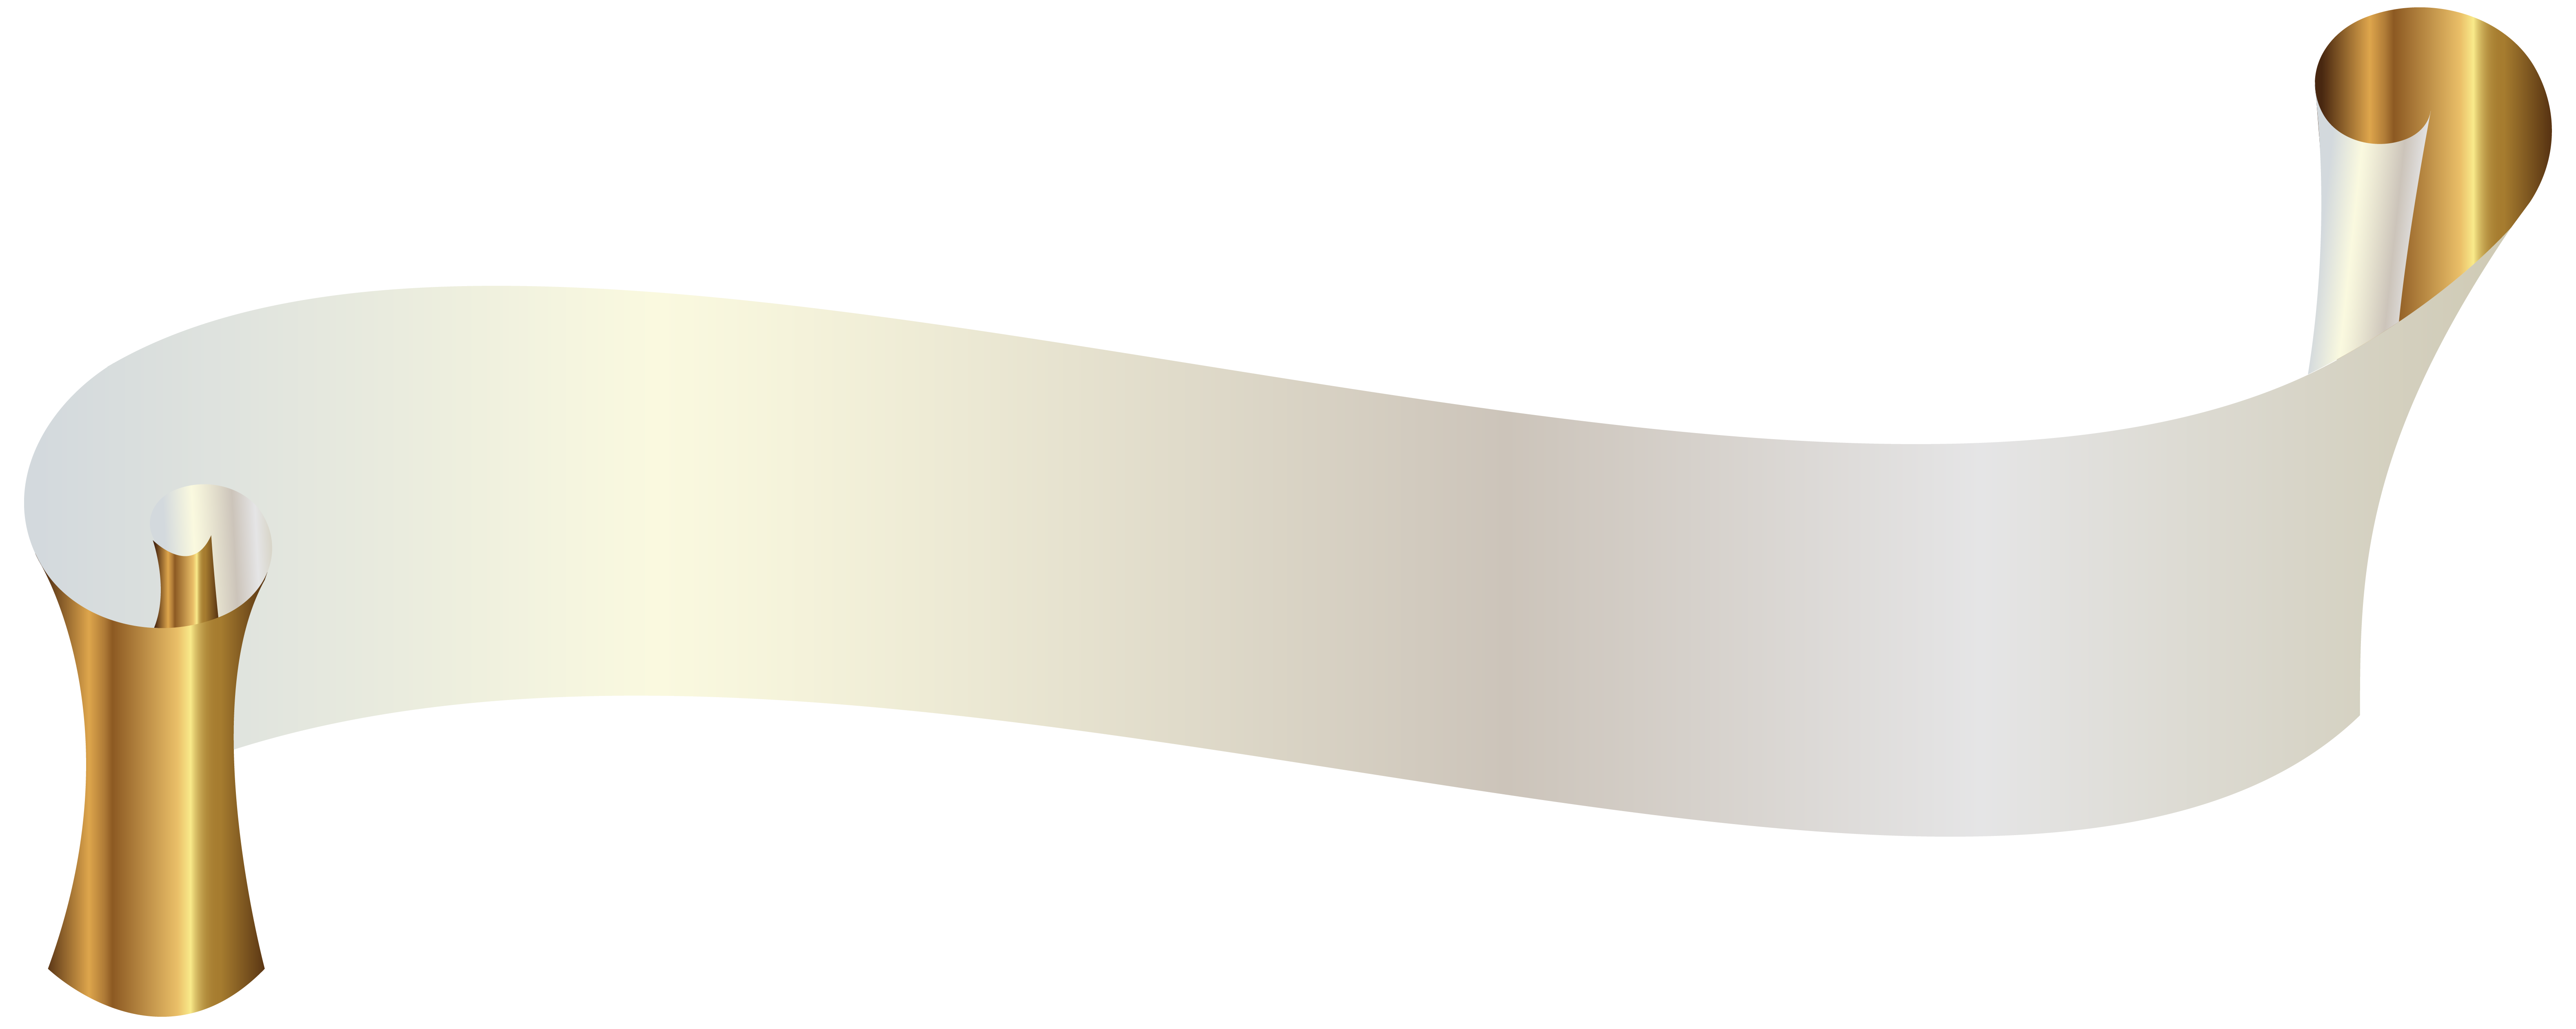 Label clipart grey banner. White with gold png